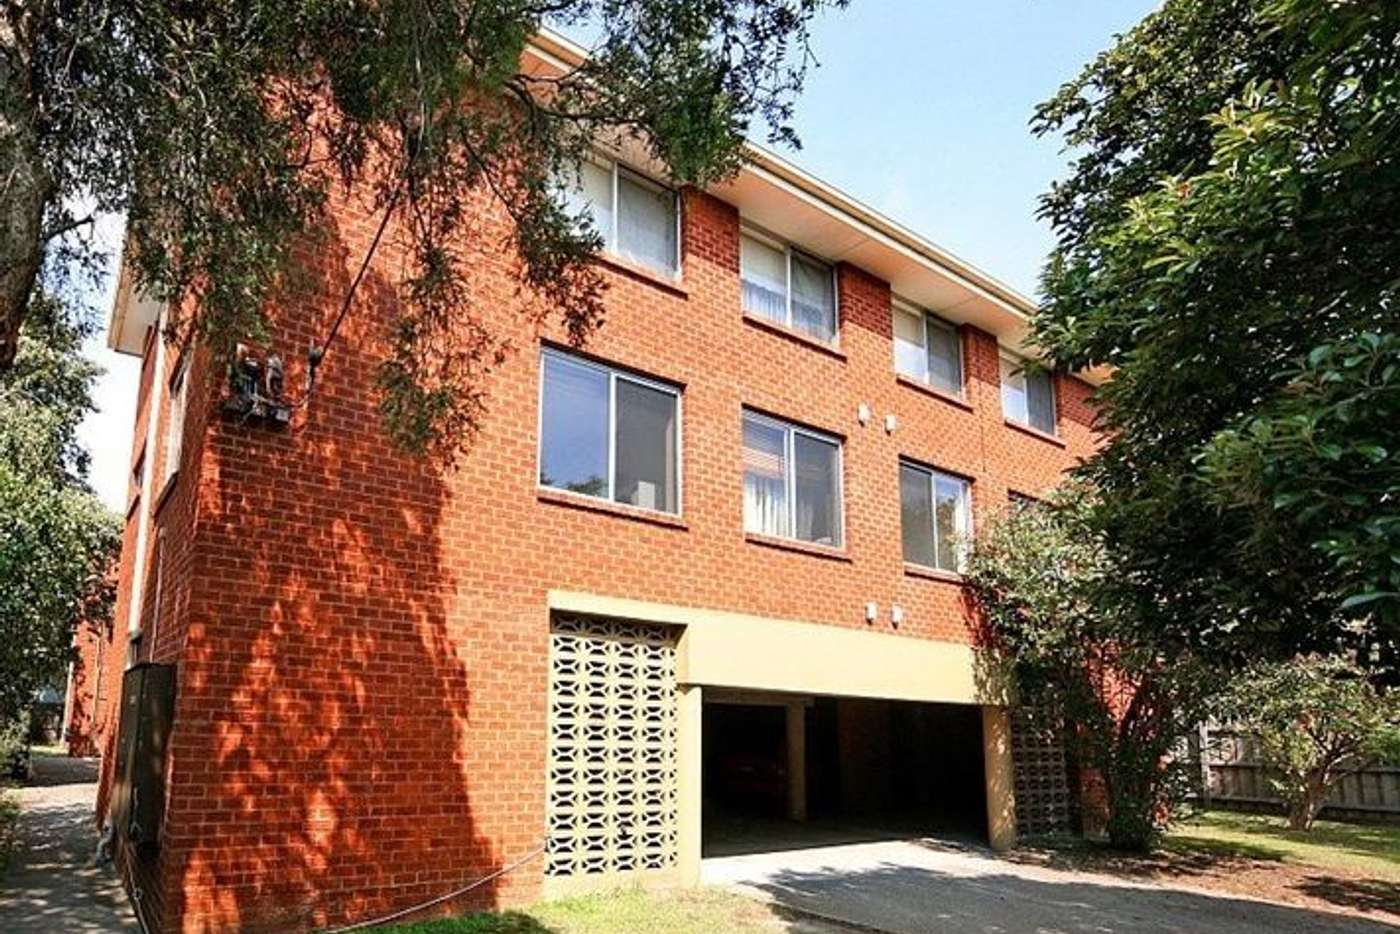 Main view of Homely apartment listing, 11/26 Gladstone Avenue, Armadale VIC 3143